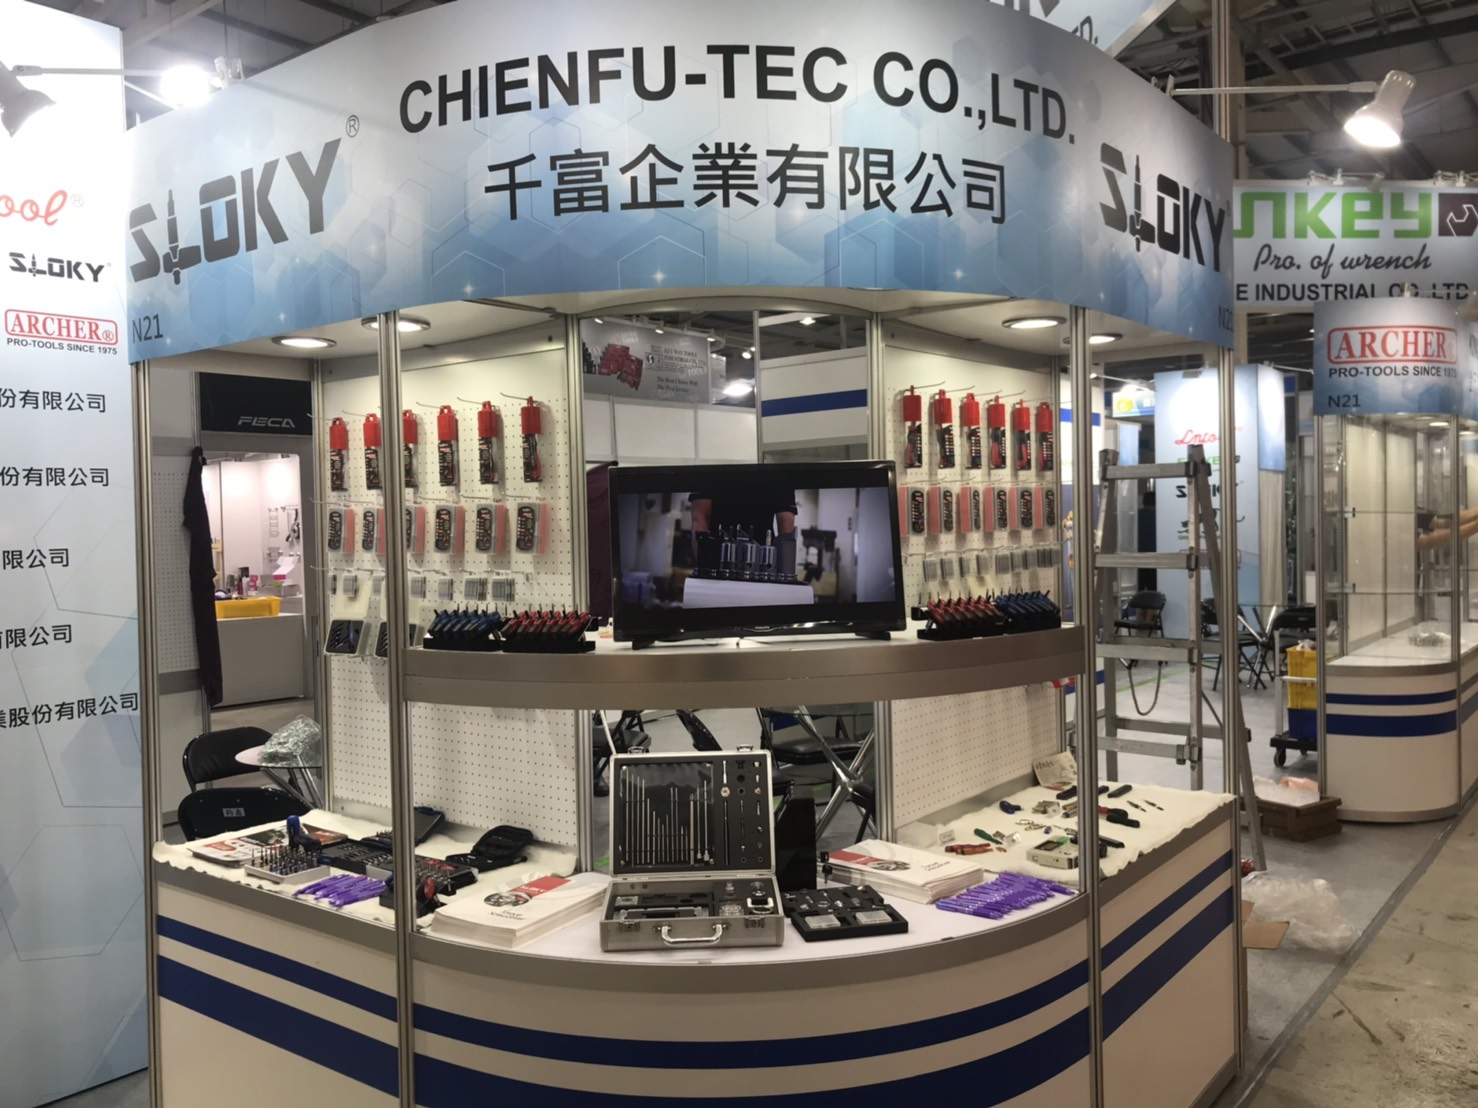 Chienfu Sloky will be in Taiwan Hardware Show 2018